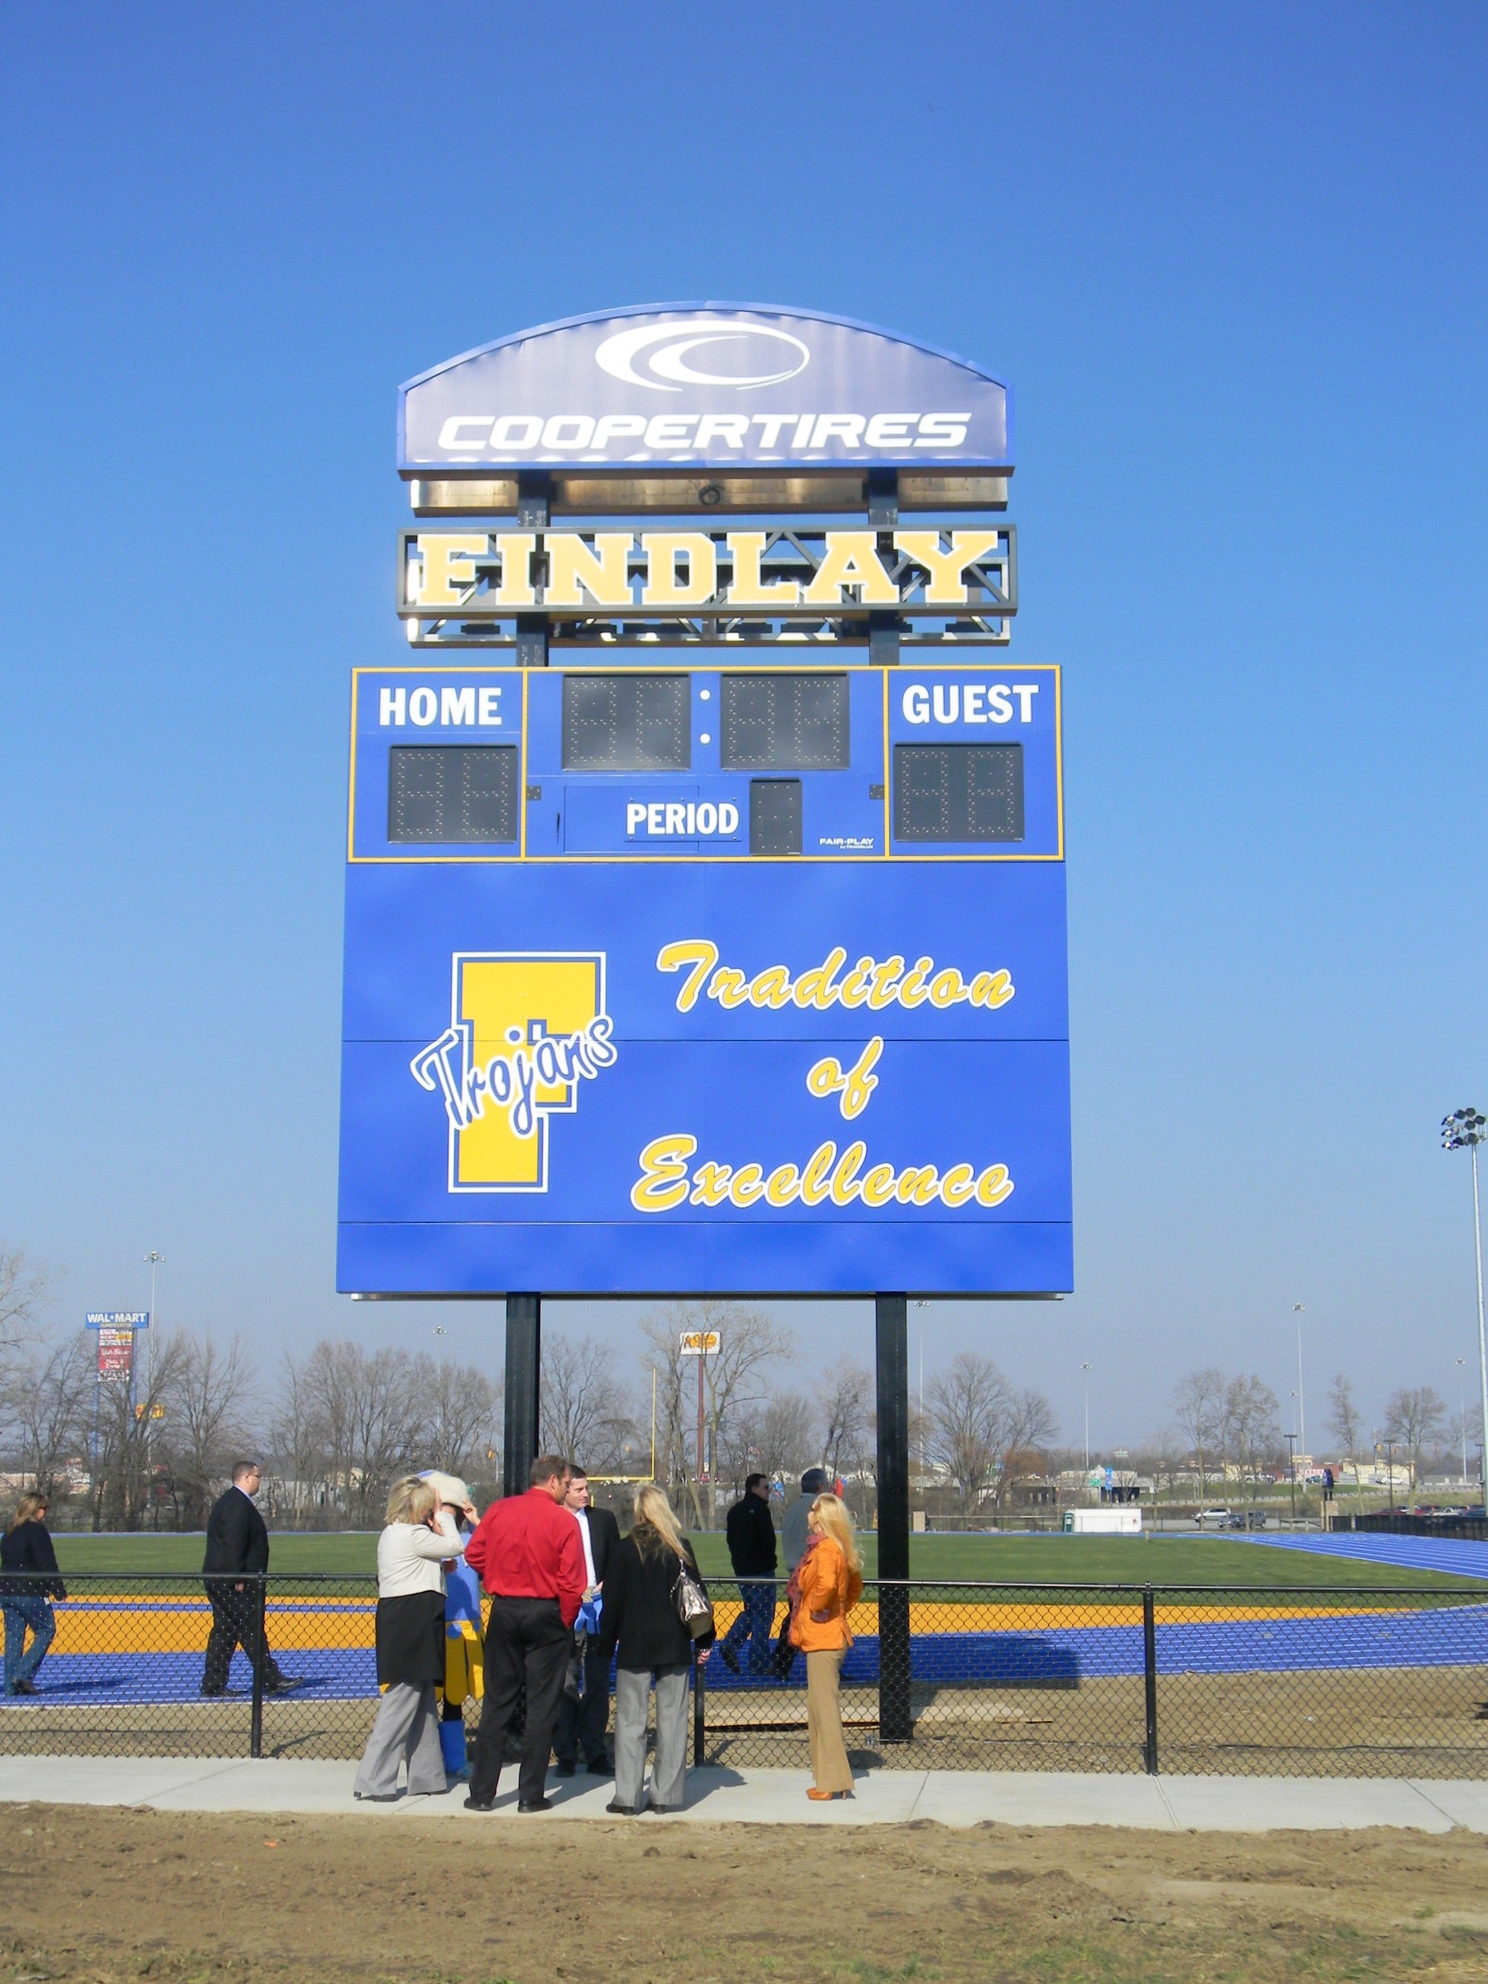 www.rcmarchitects.com - findlay city schools - coopertires track field complex (2)